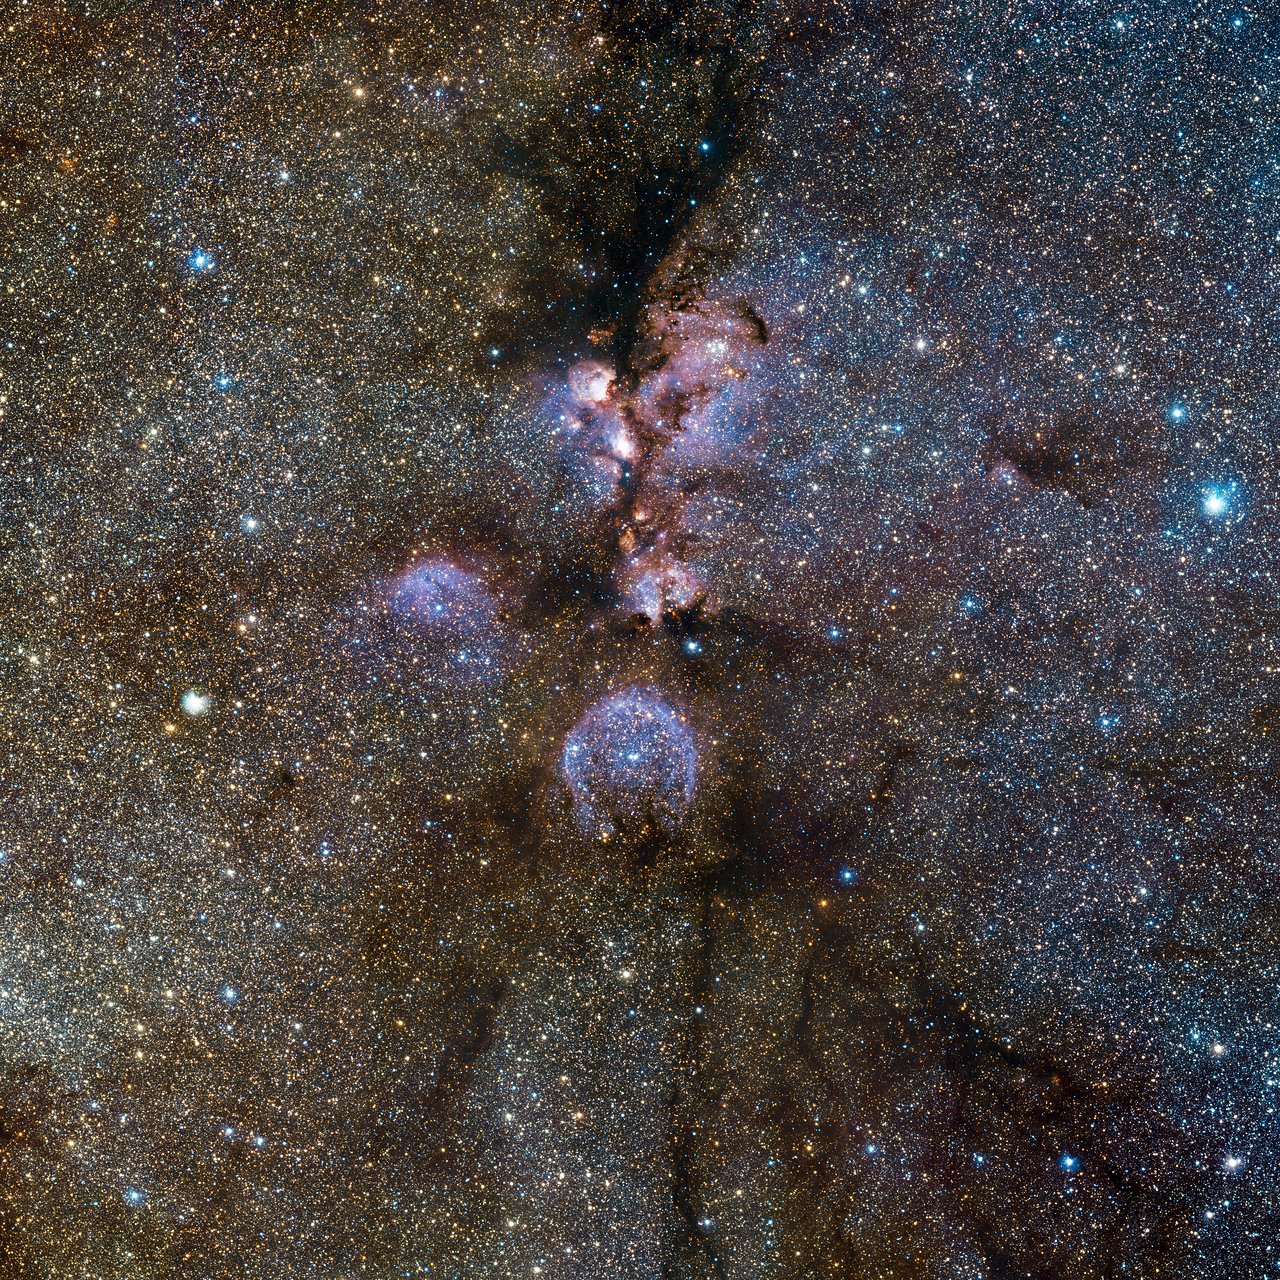 VISTA's infrared view of the Cat's Paw Nebula*